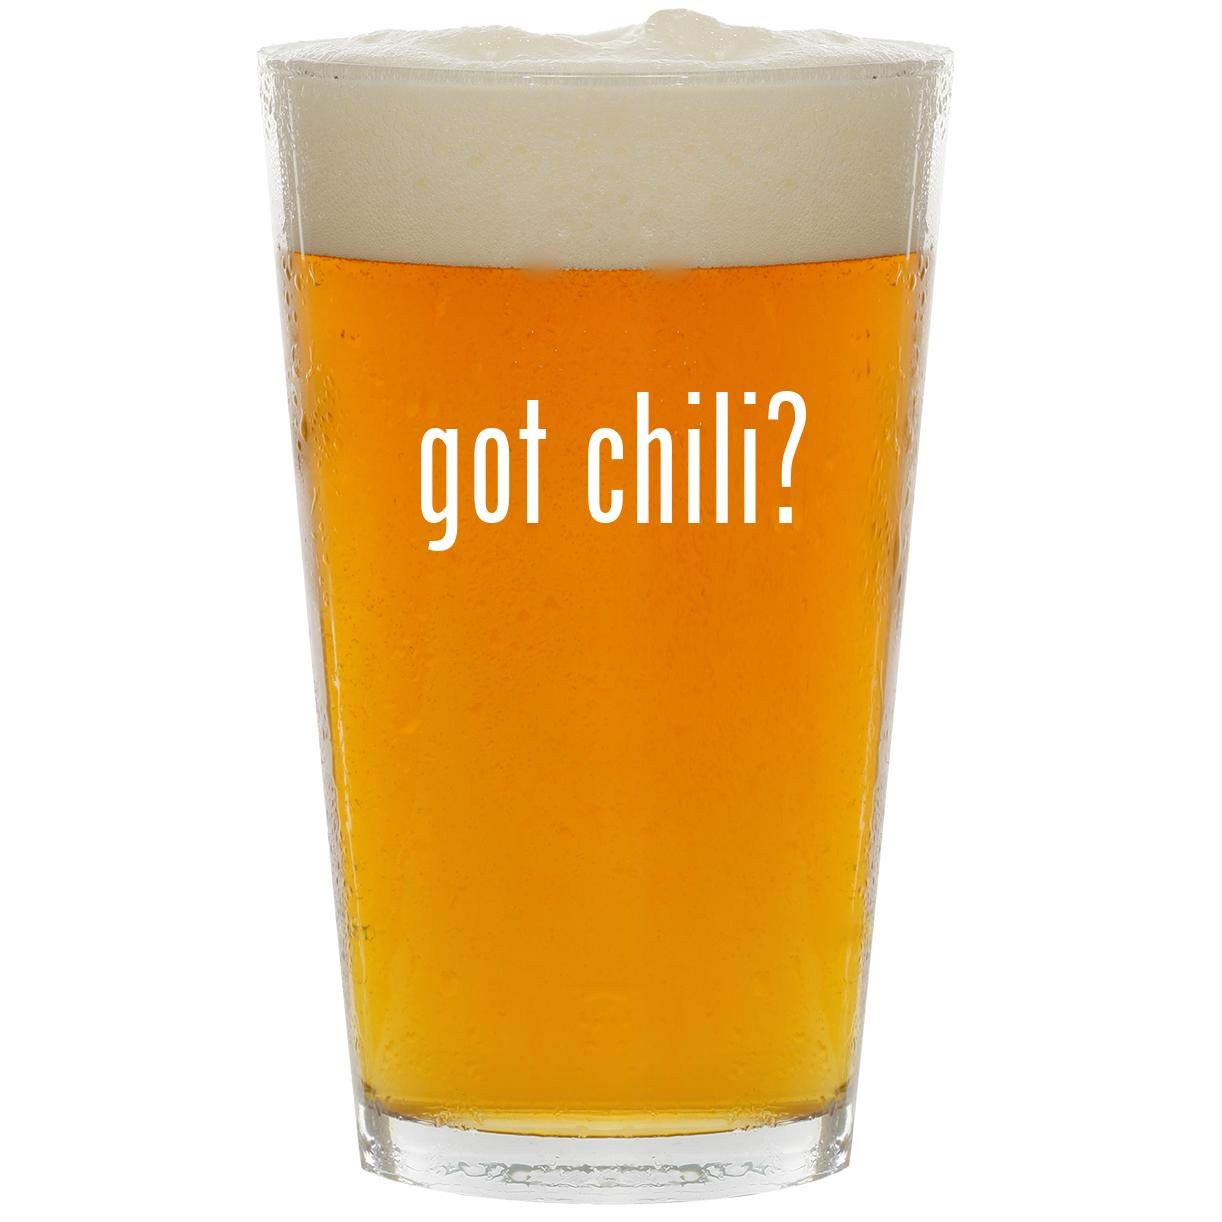 got chili? - Glass 16oz Beer Pint